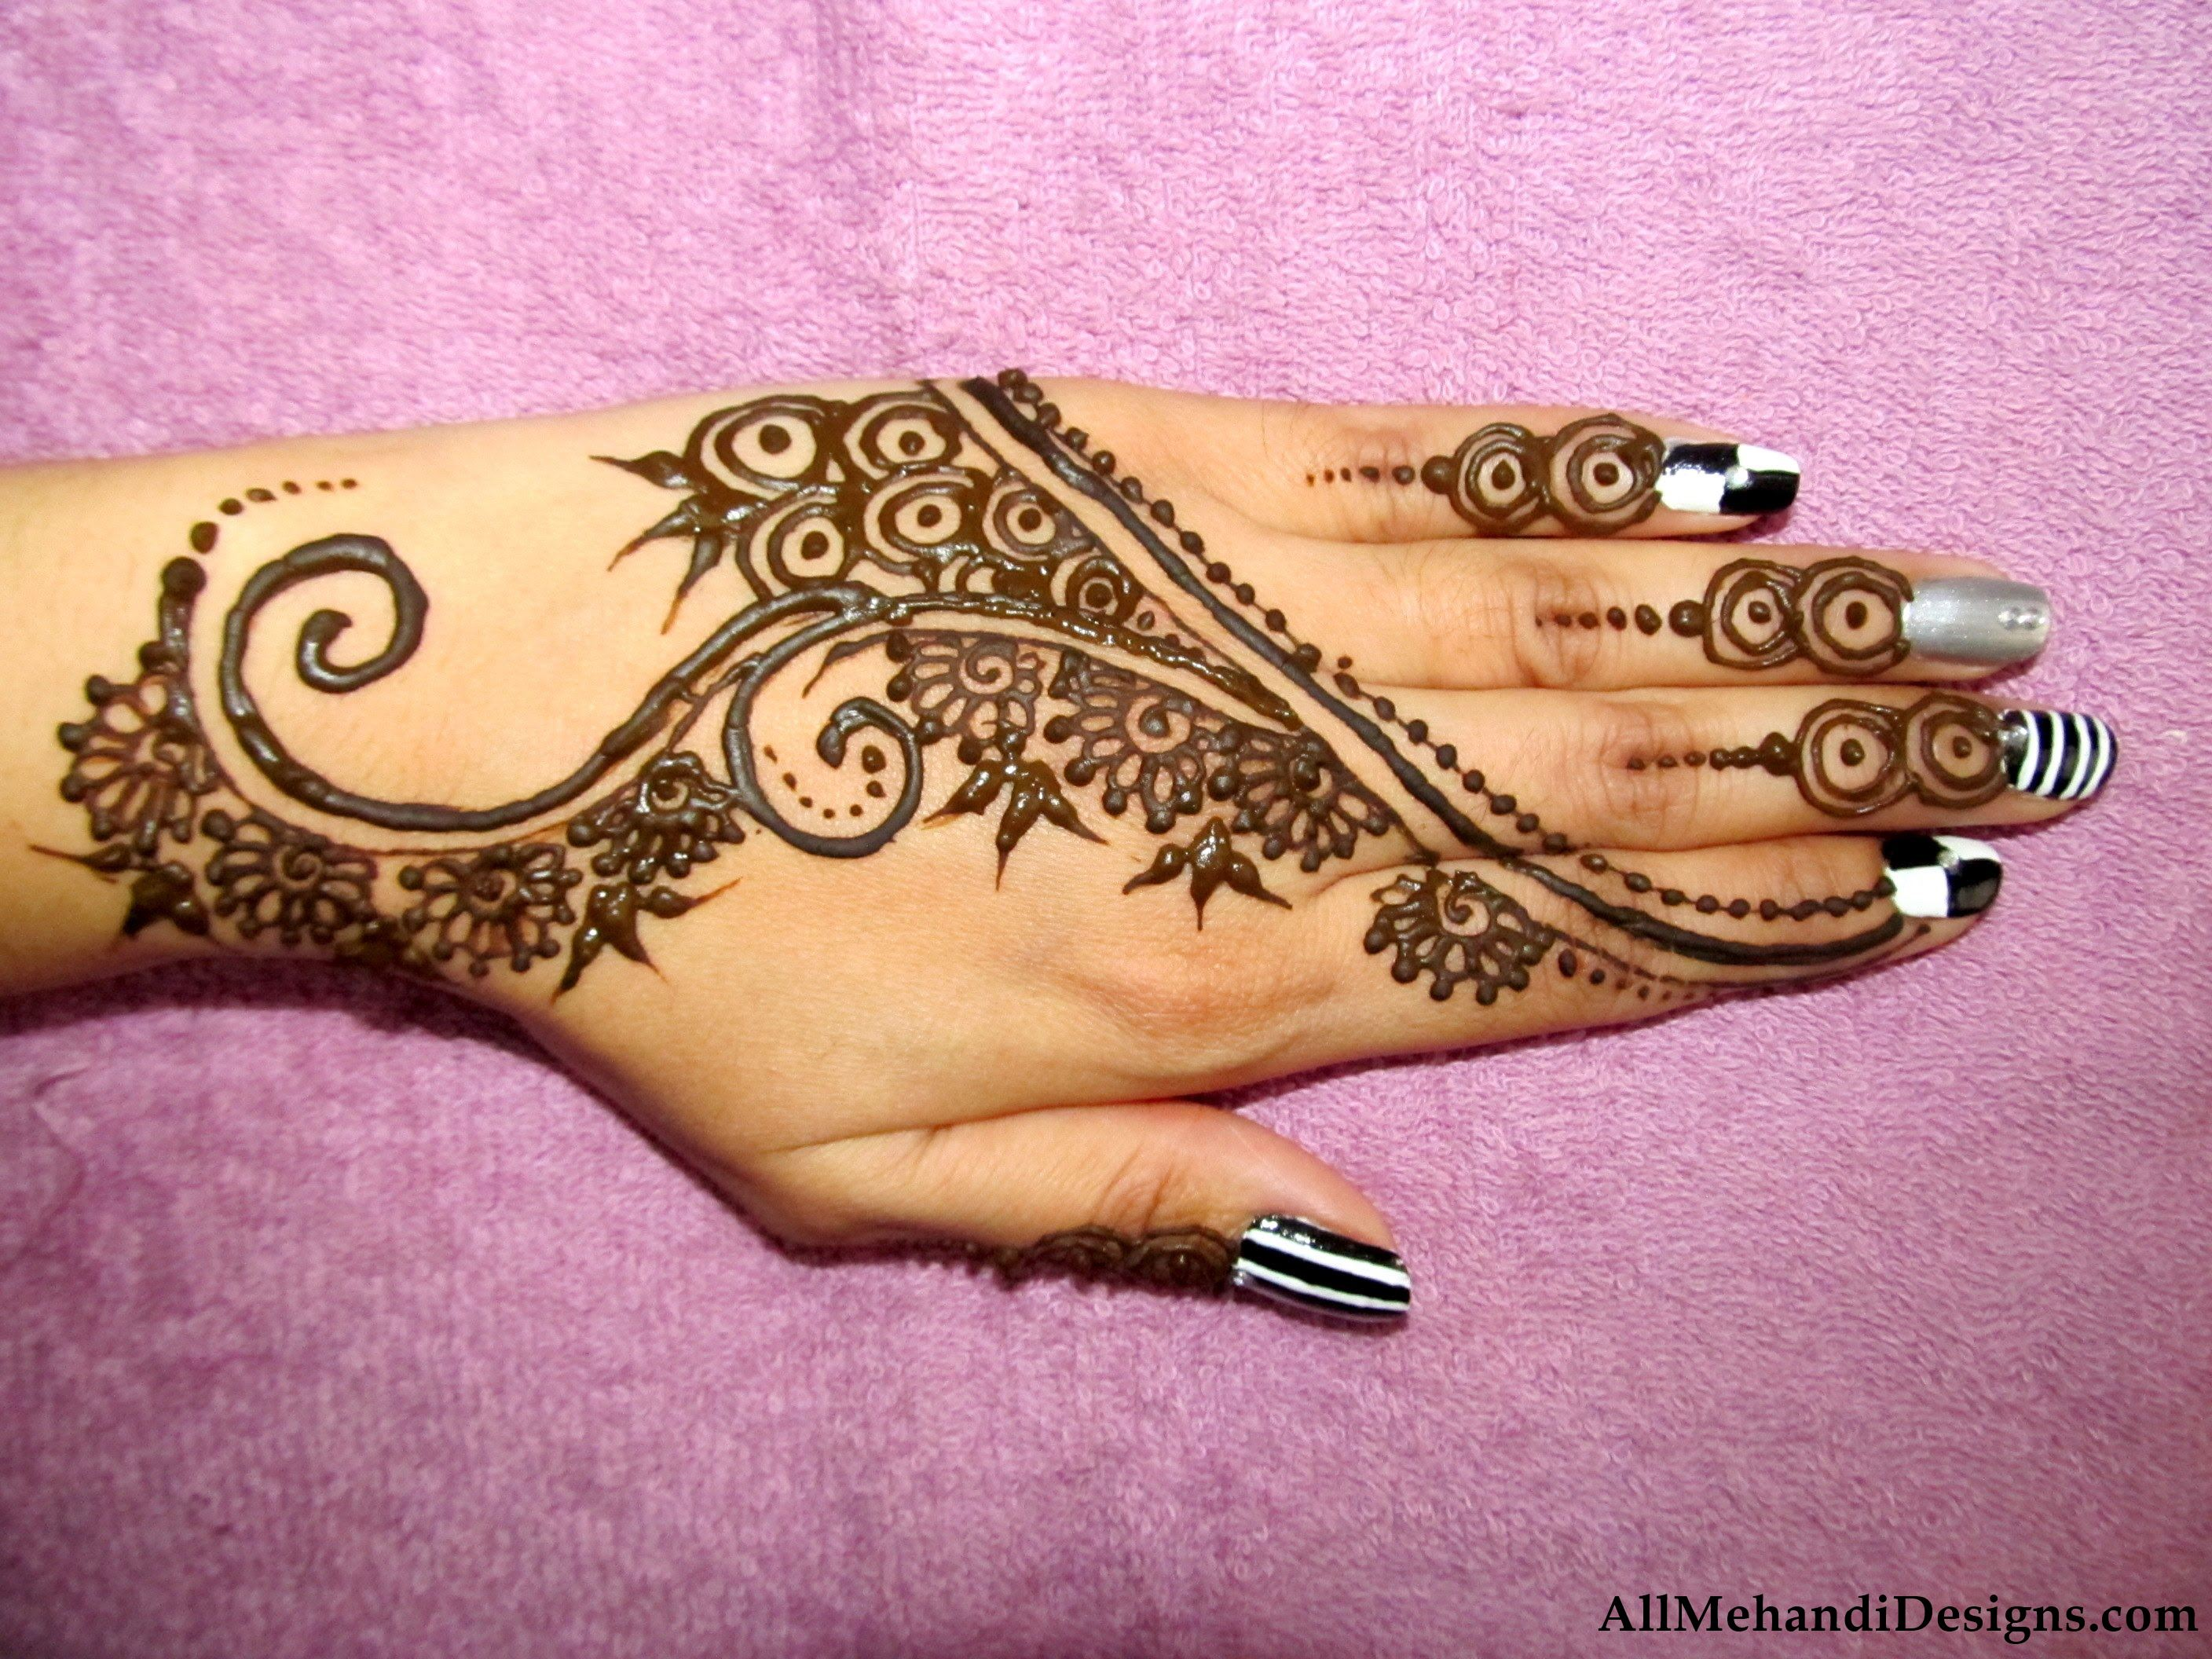 mehndi design mehandi designs mehendi design mehndi design images mehndi patterns